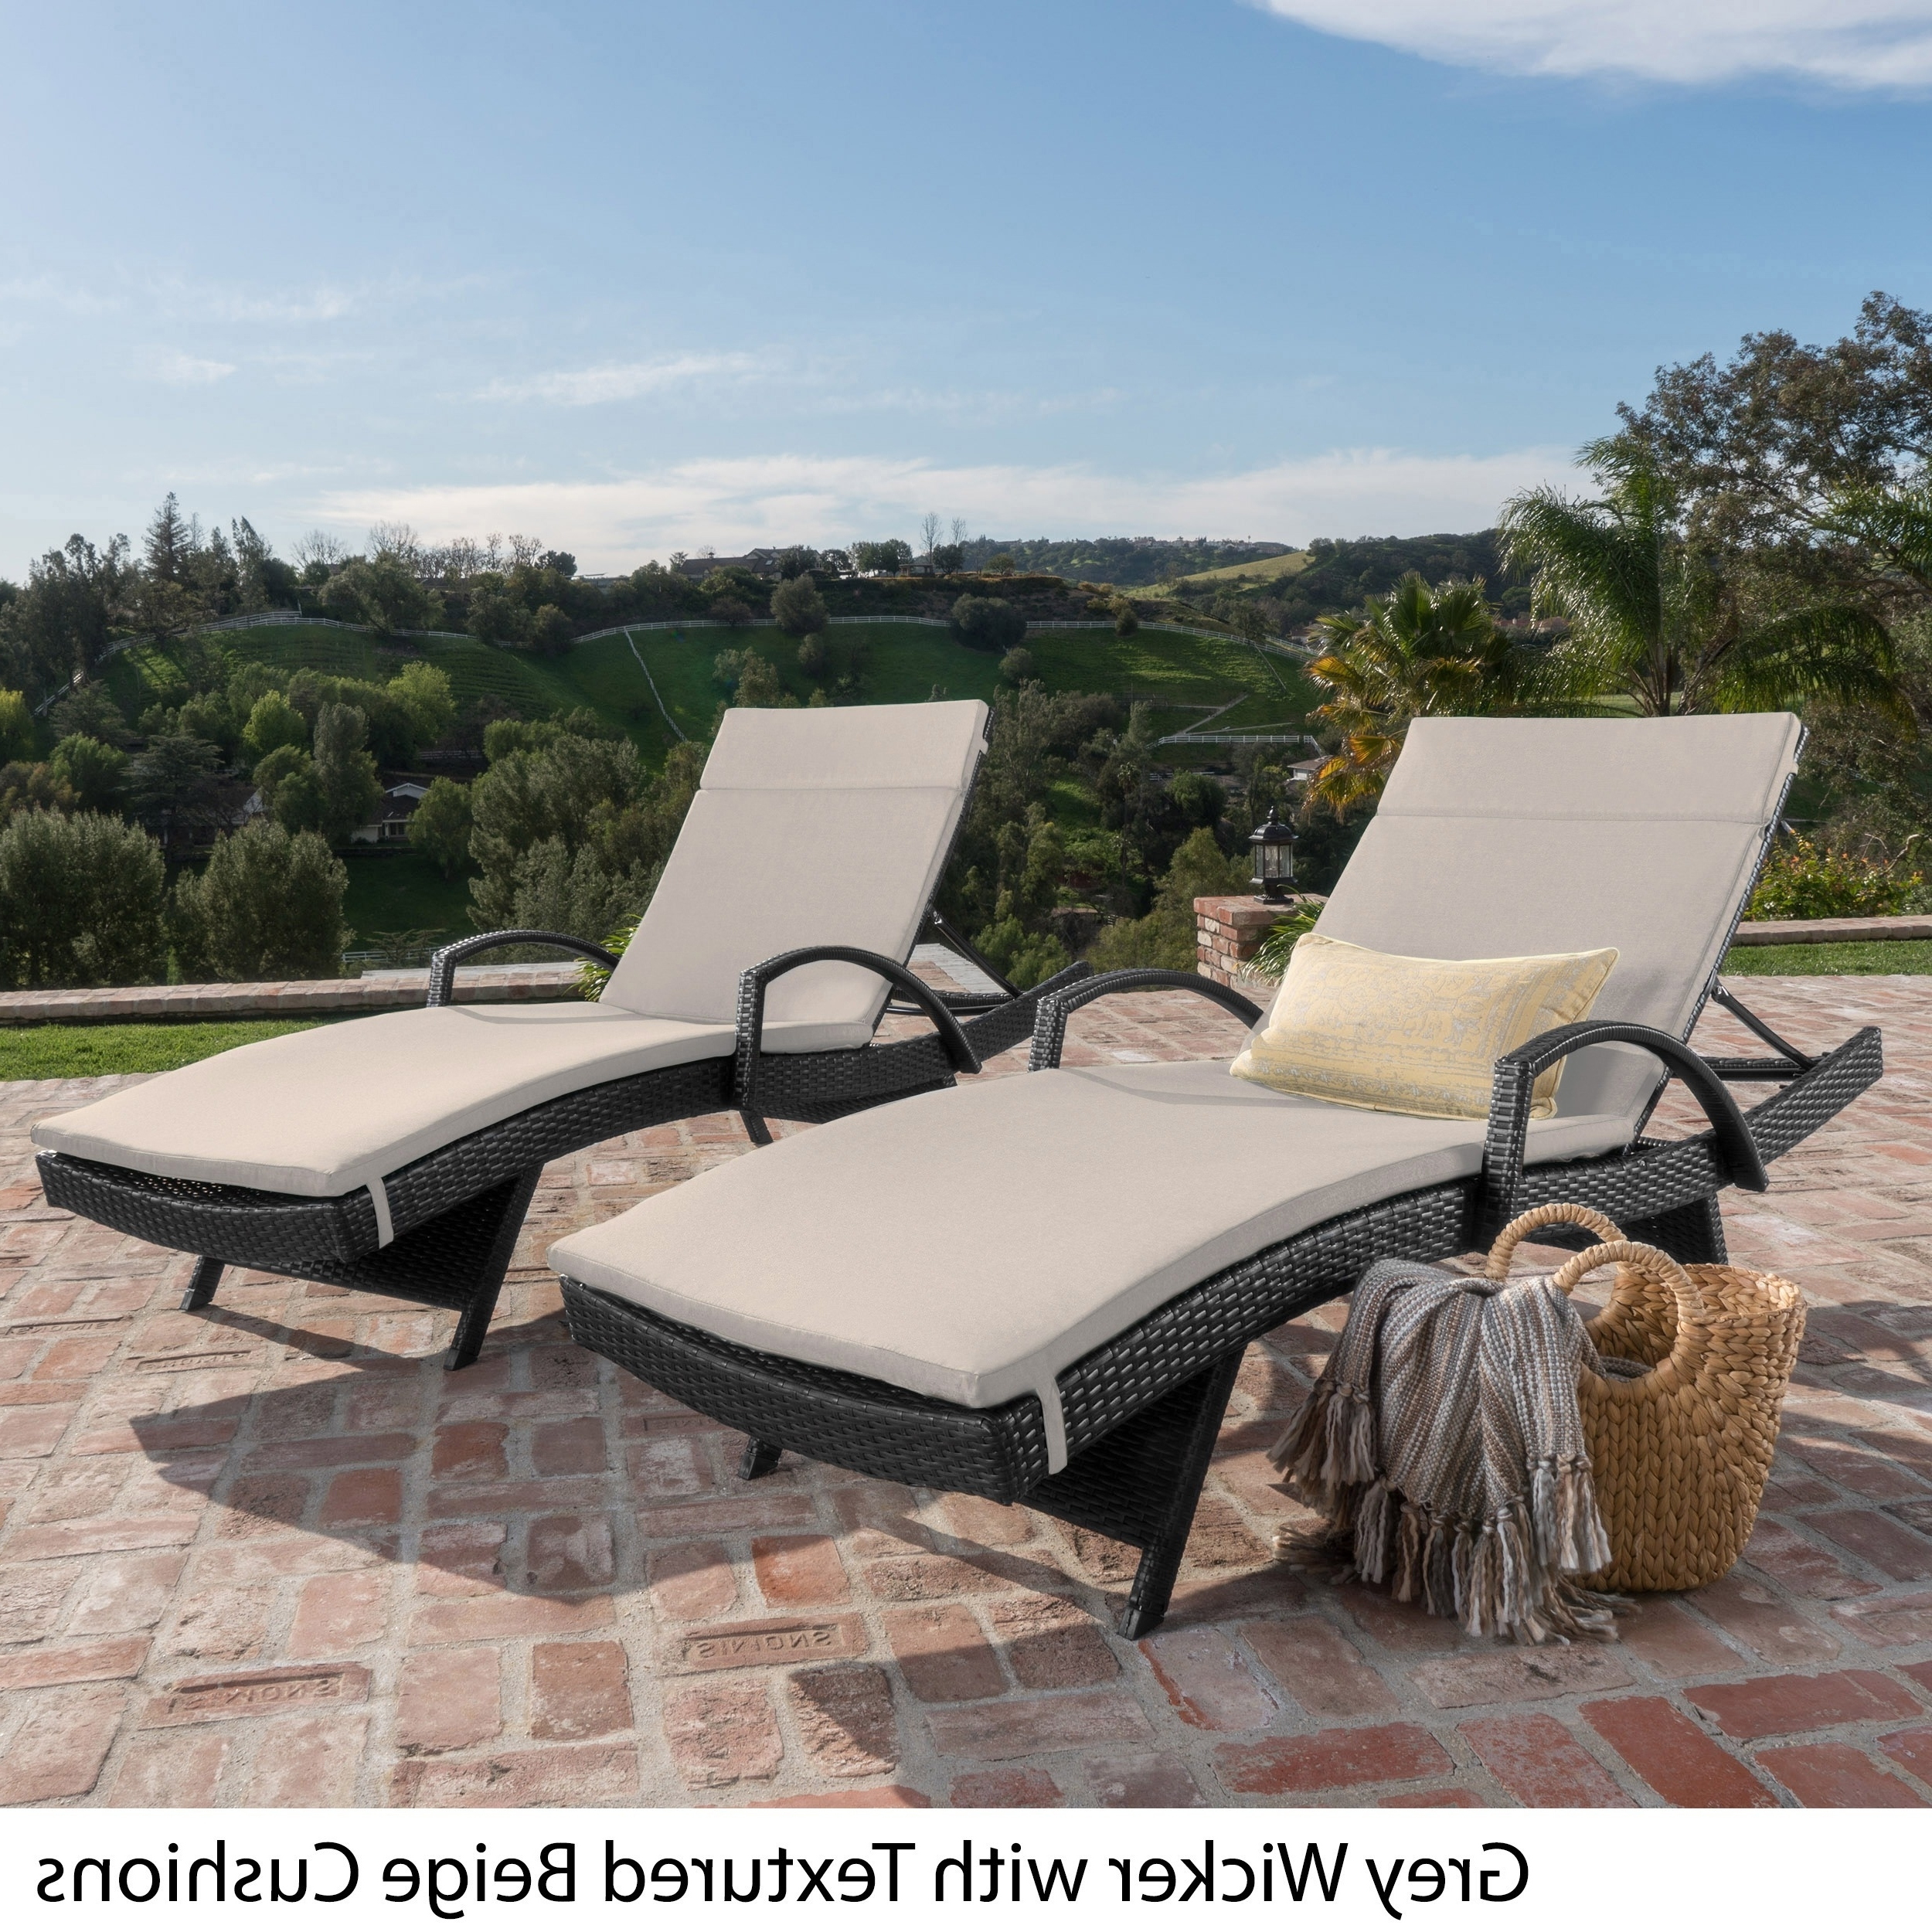 Outdoor : Lowes Chaise Lounge Indoor Outdoor Chaise Lounge Chairs For Recent Hotel Pool Chaise Lounge Chairs (View 12 of 15)